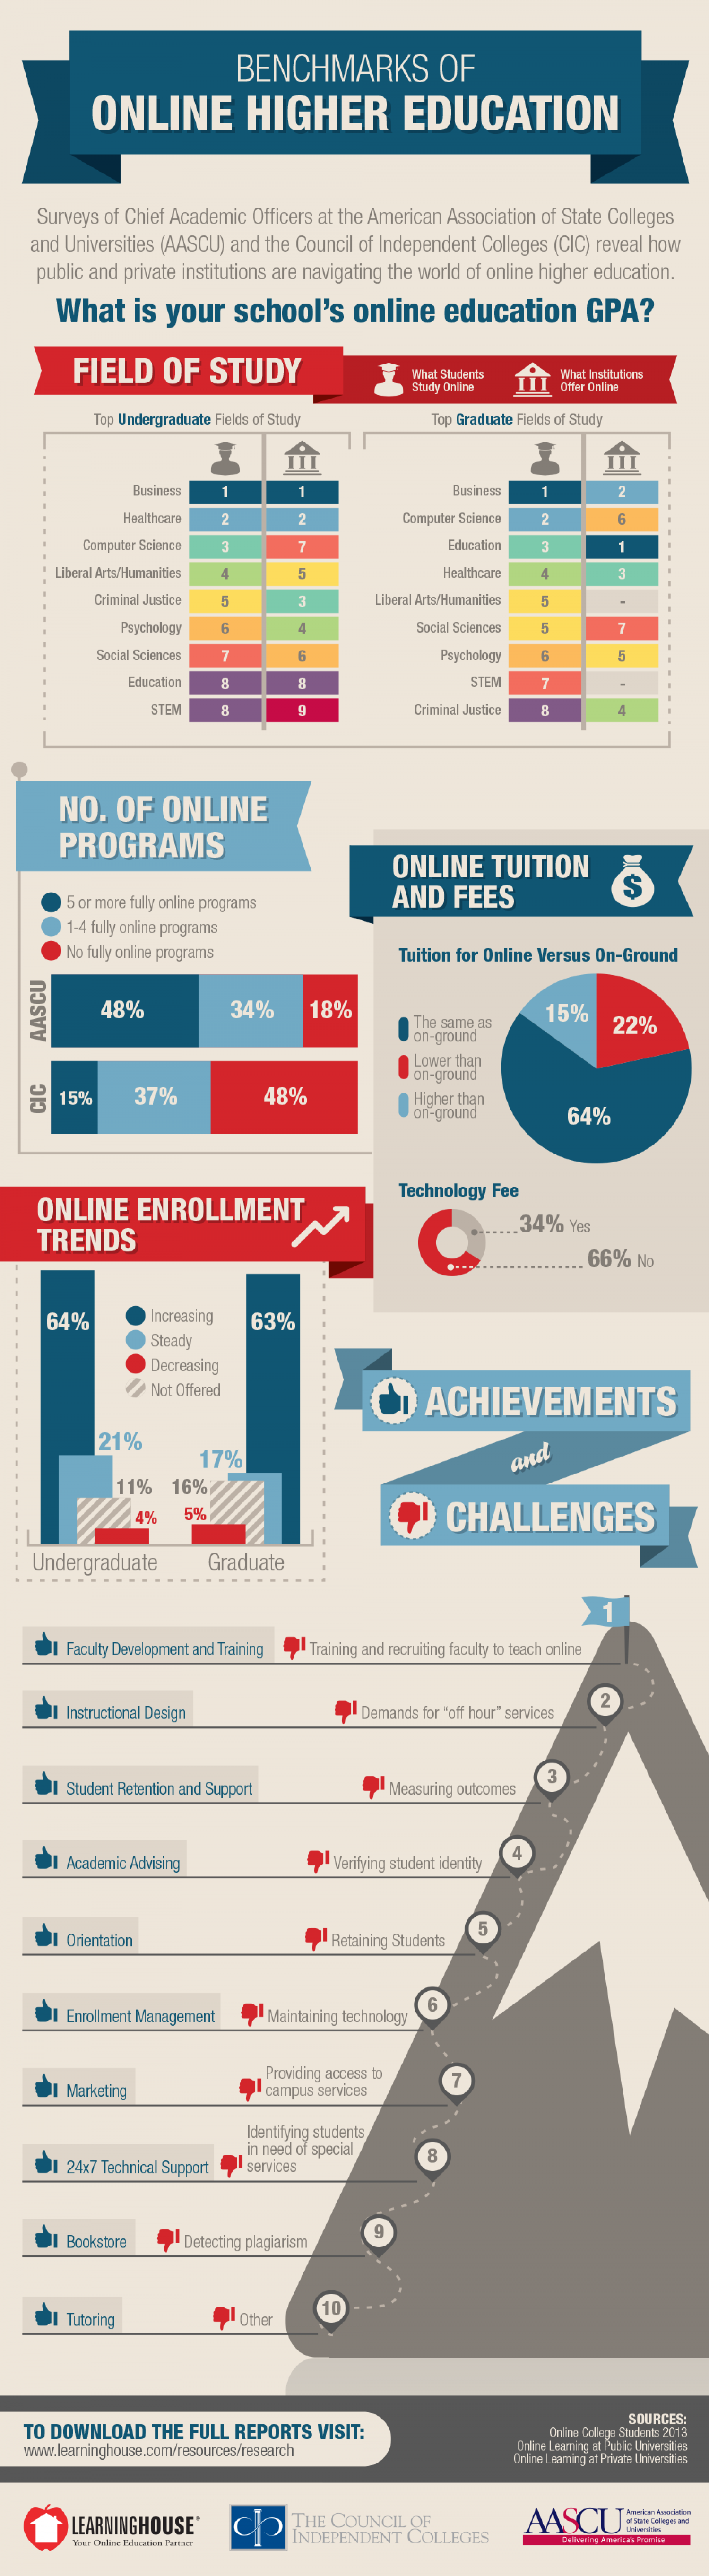 Benchmarks of Online Higher Education Infographic